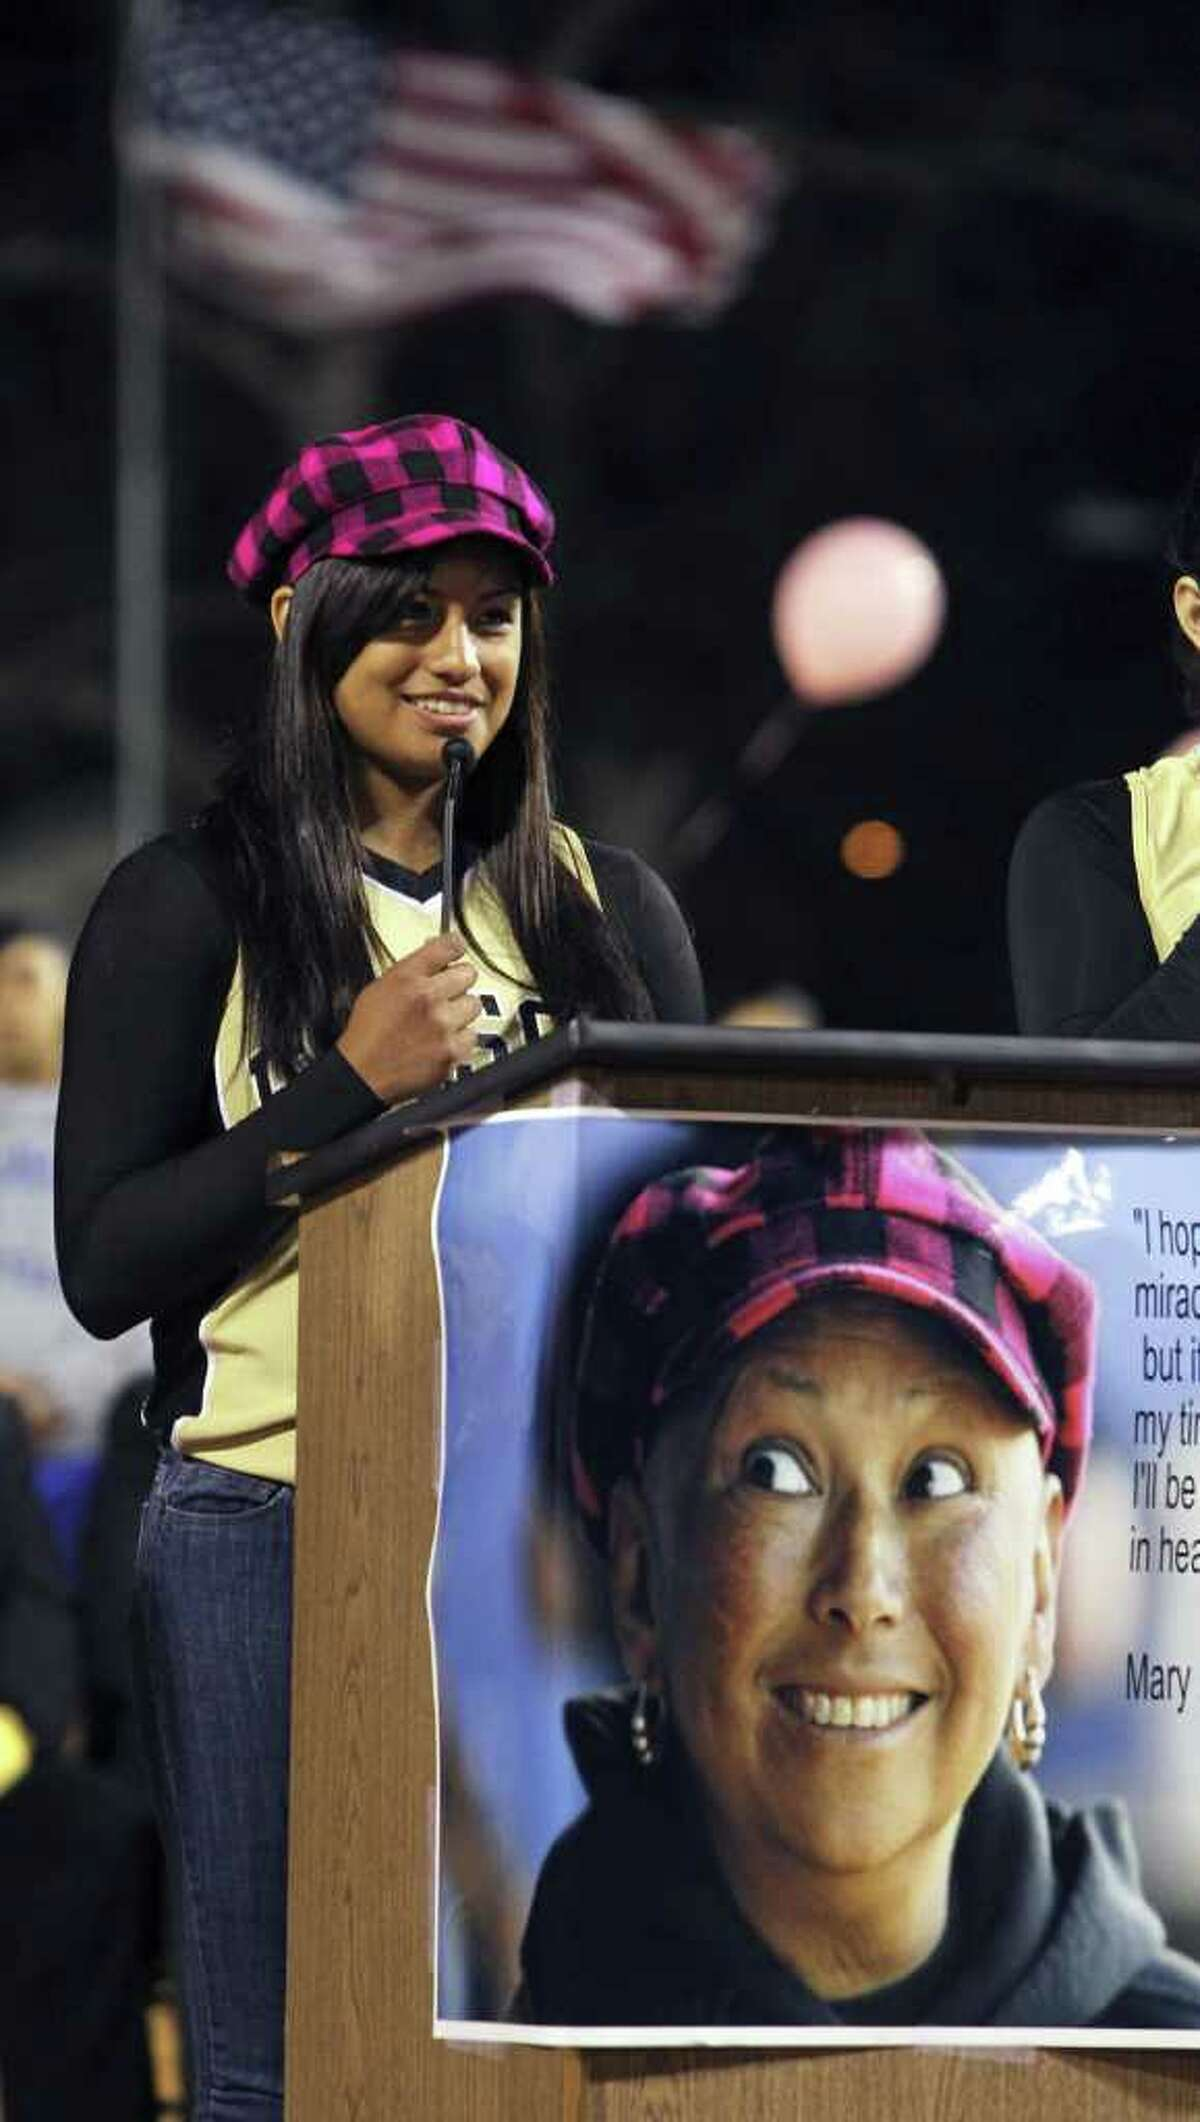 Edison softball player Lisa Vasquez shares words about her coach while wearing her hat as SAISD dedicates the Mary Ann Villarreal softball complex on February 16, 2011. Tom Reel/treel@express-news.net